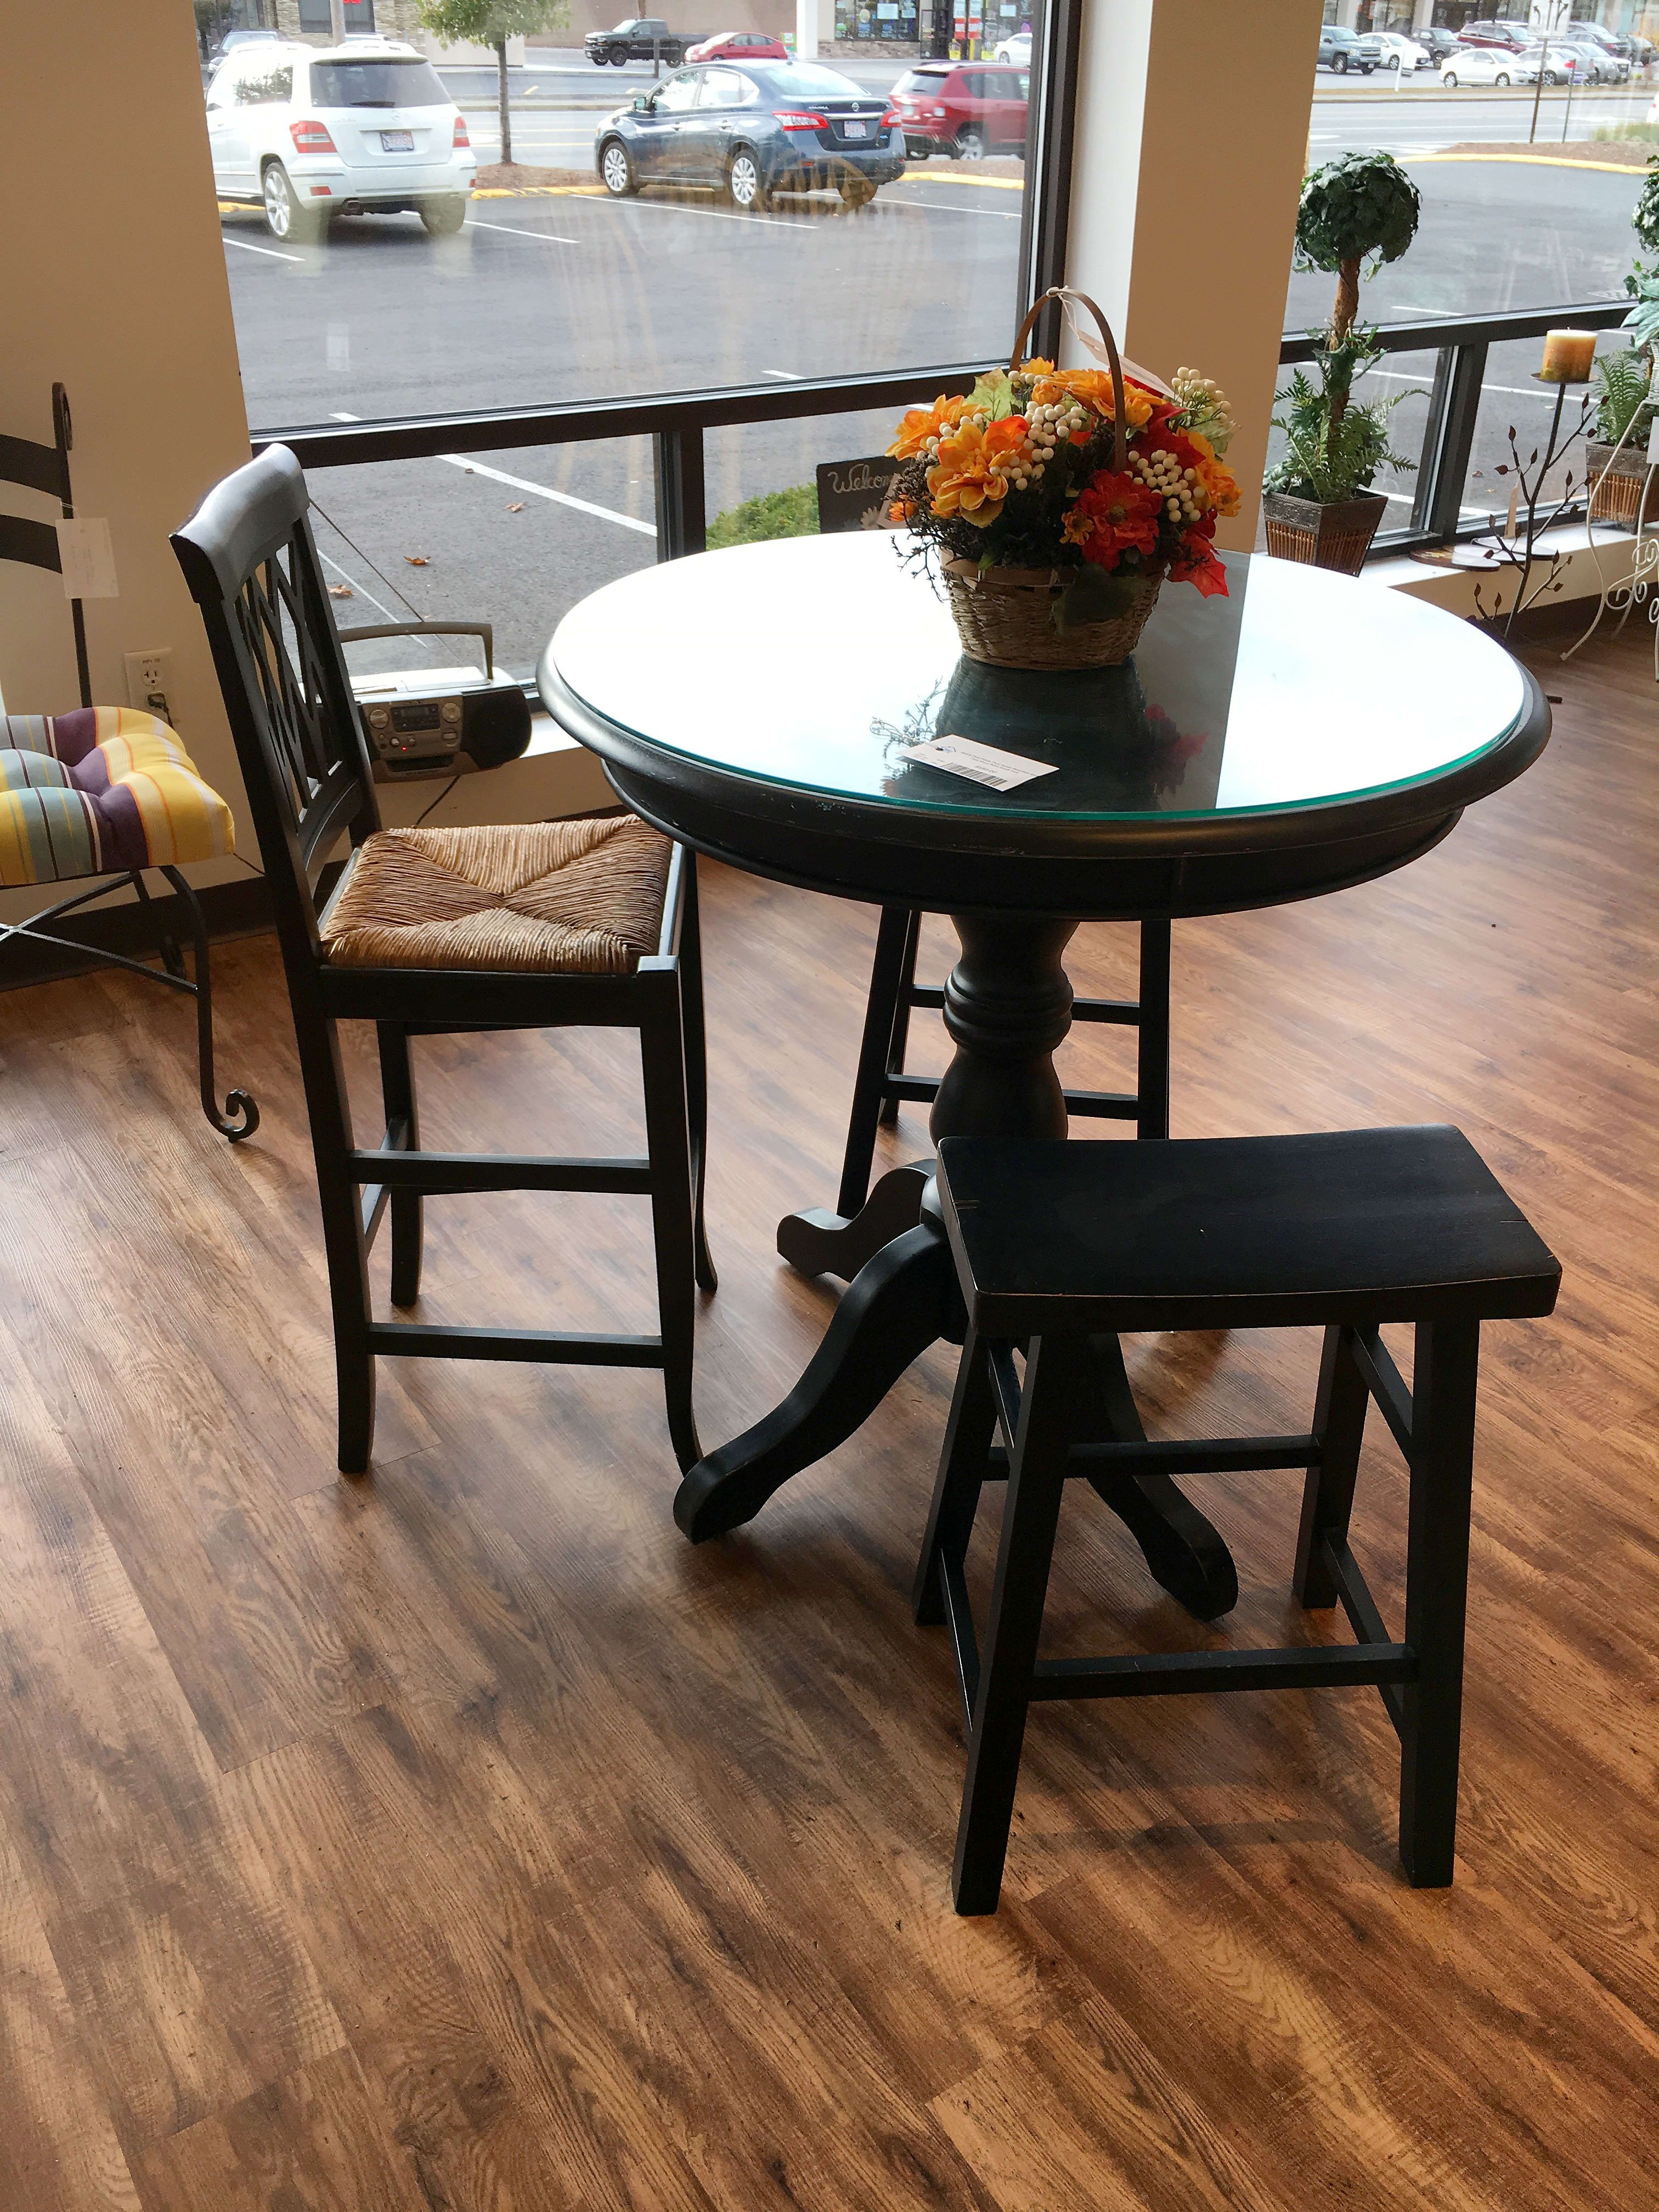 Black Pub Table Two Saddle Benches And One Stool With